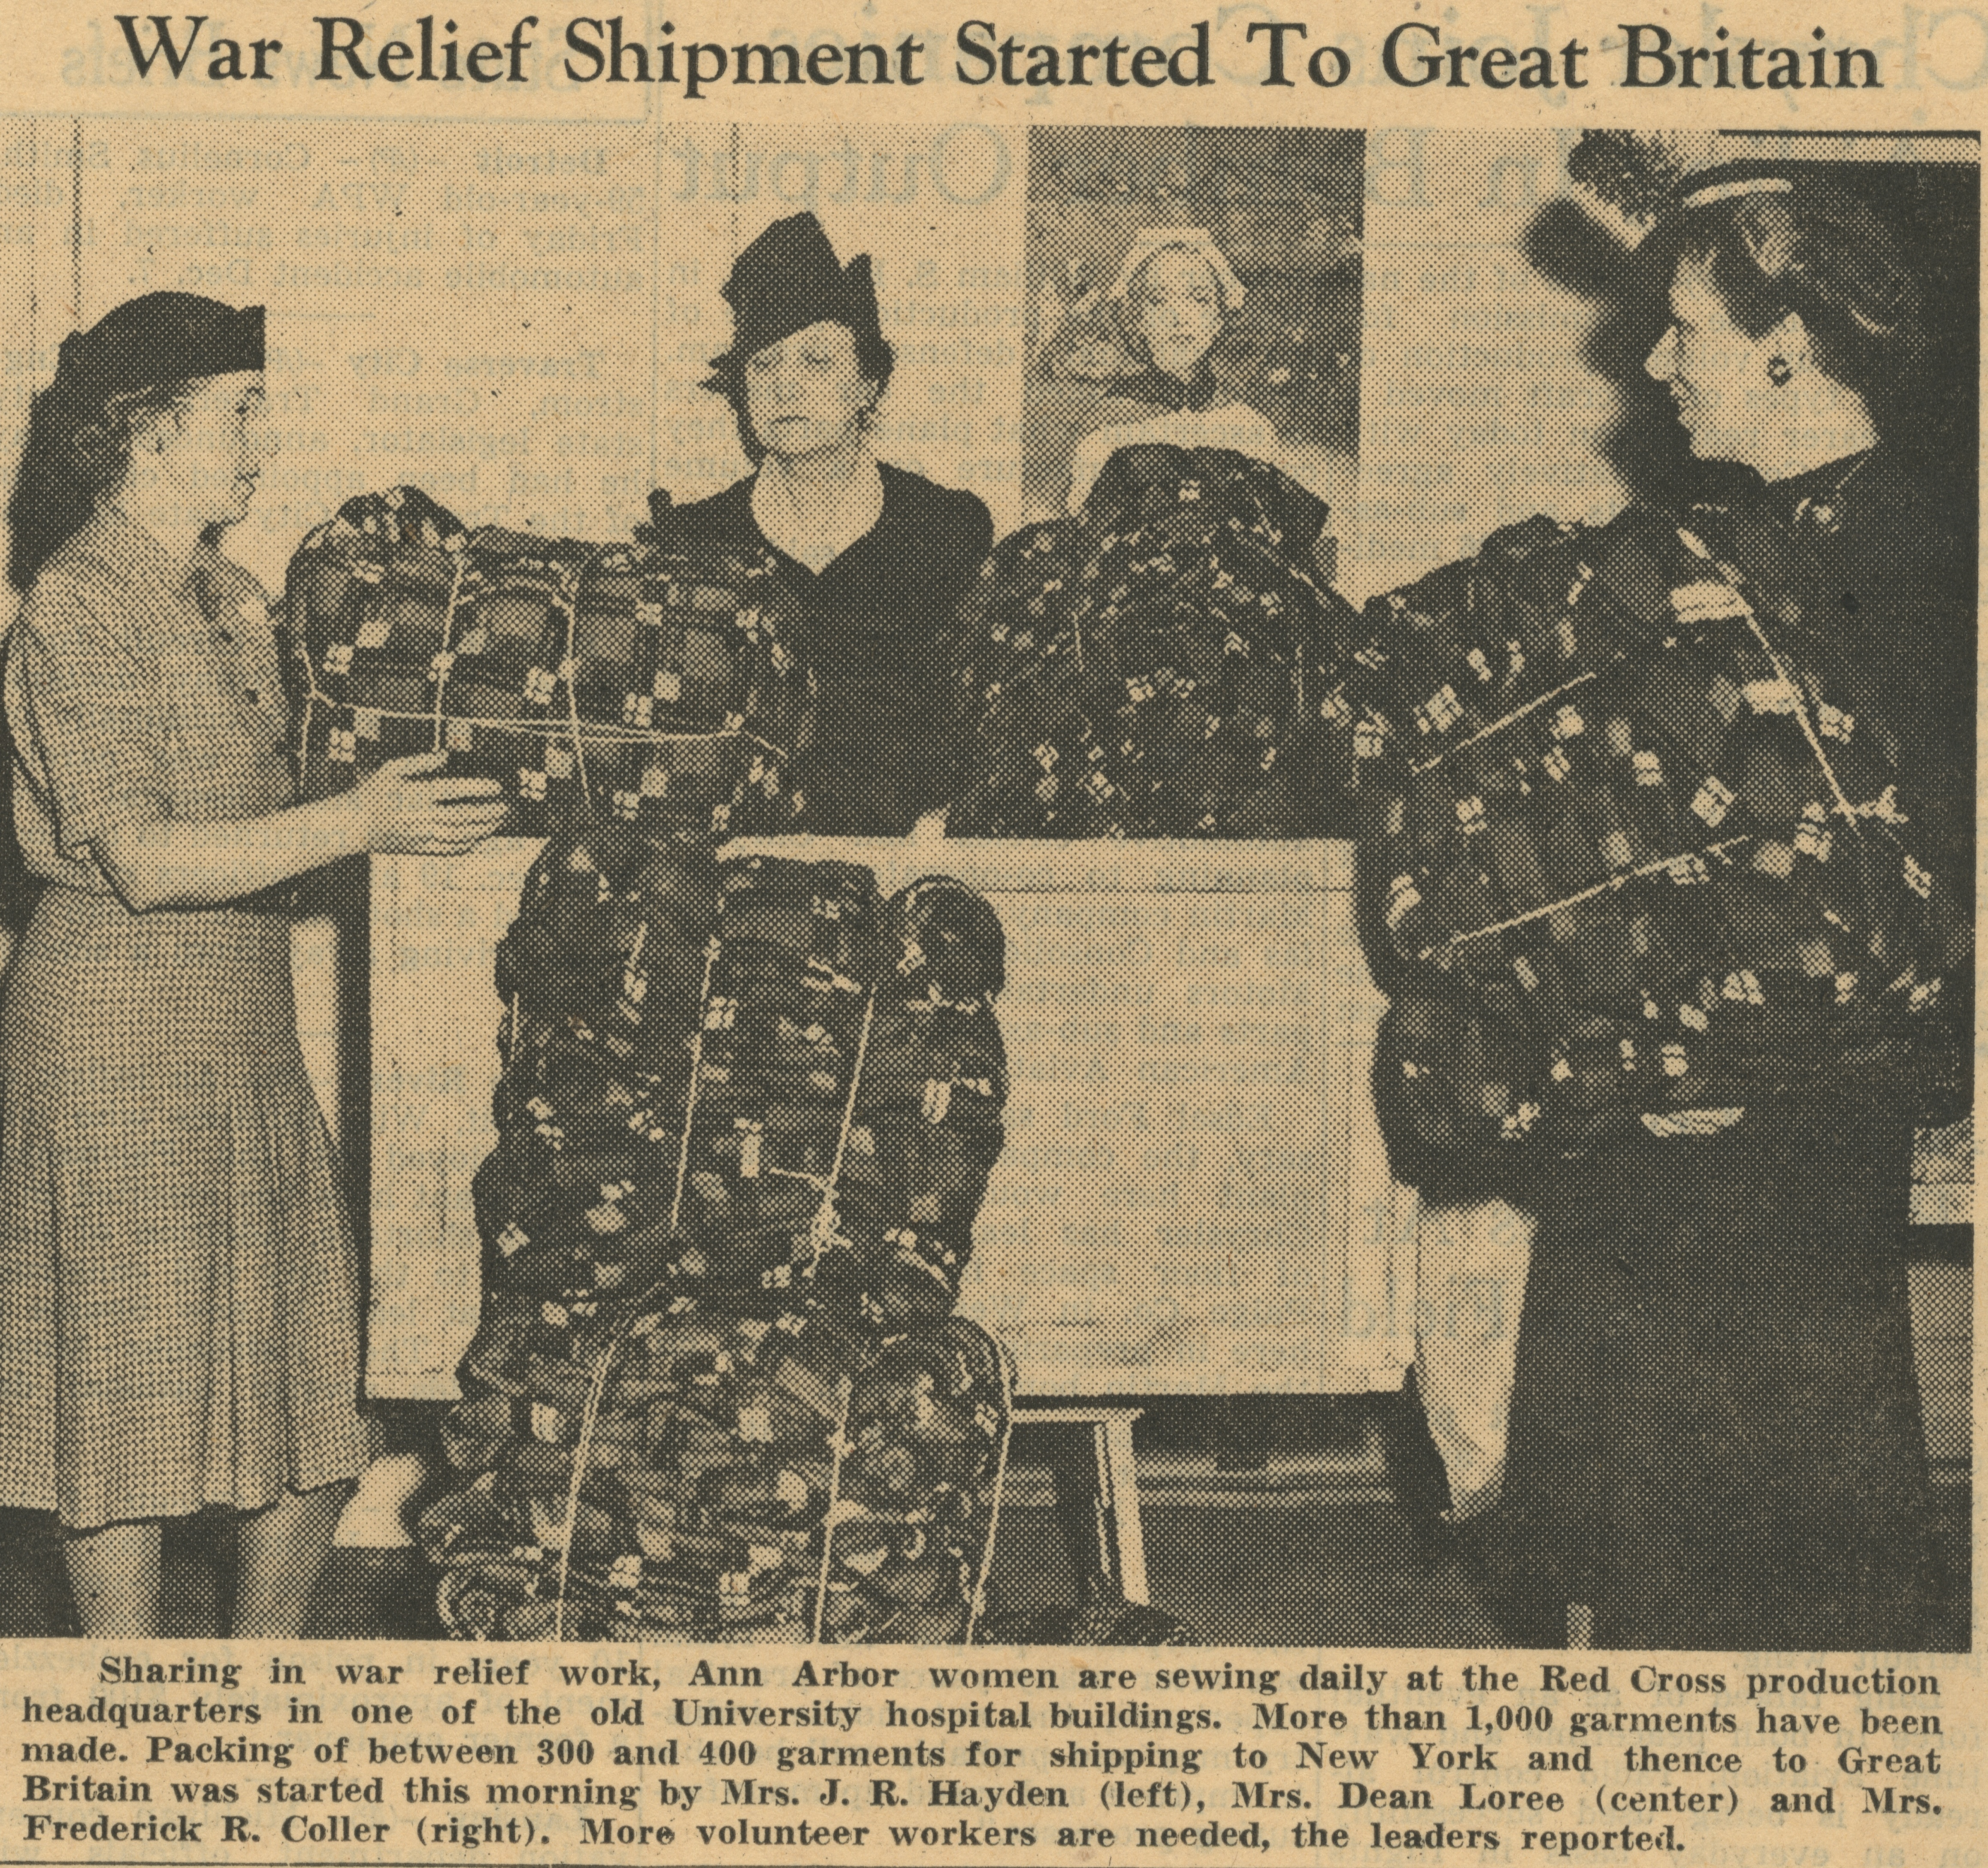 War Relief Shipment Started To Great Britain image